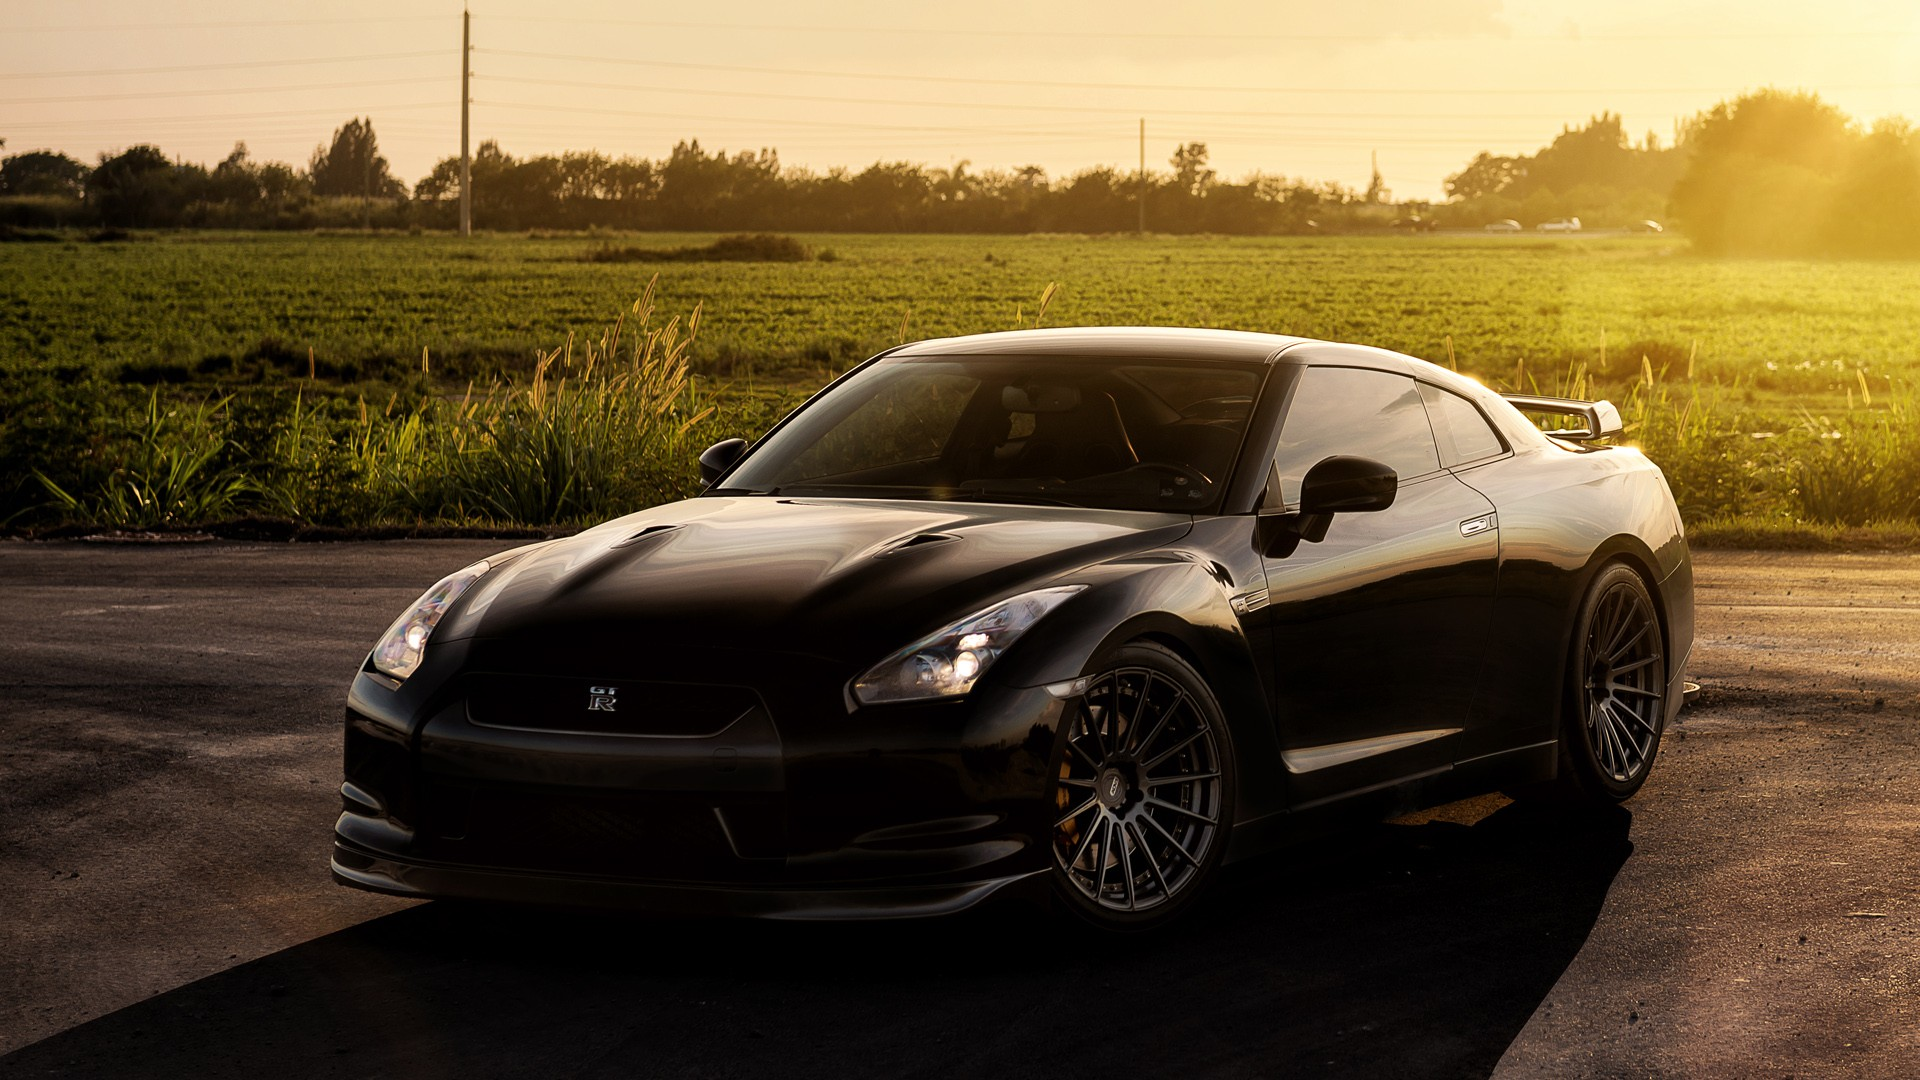 Cars Wallpapers: Nissan GTR On ADV1 Wheels Wallpaper